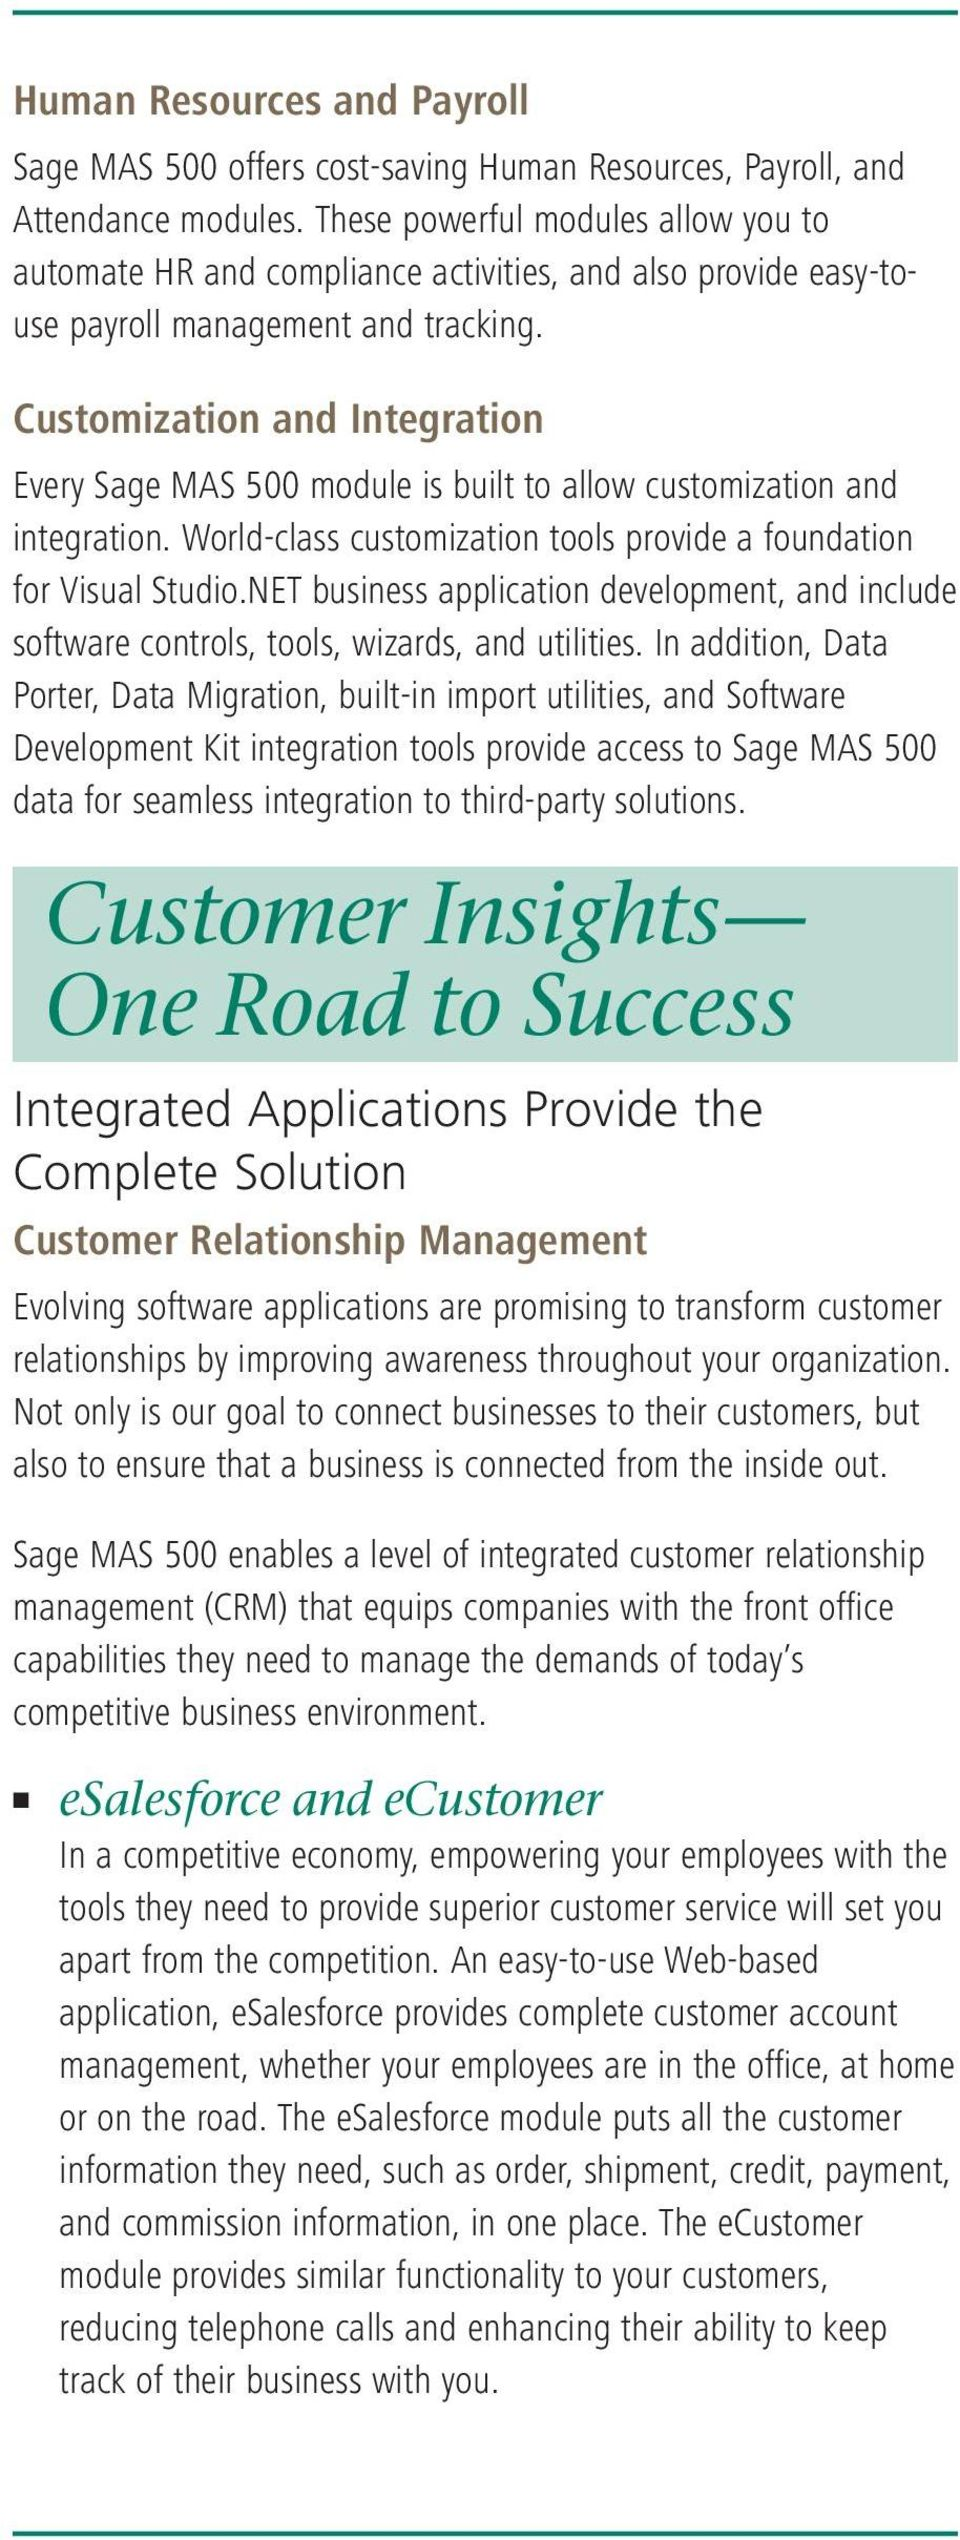 Customization and Integration Every Sage MAS 500 module is built to allow customization and integration. World-class customization tools provide a foundation for Visual Studio.